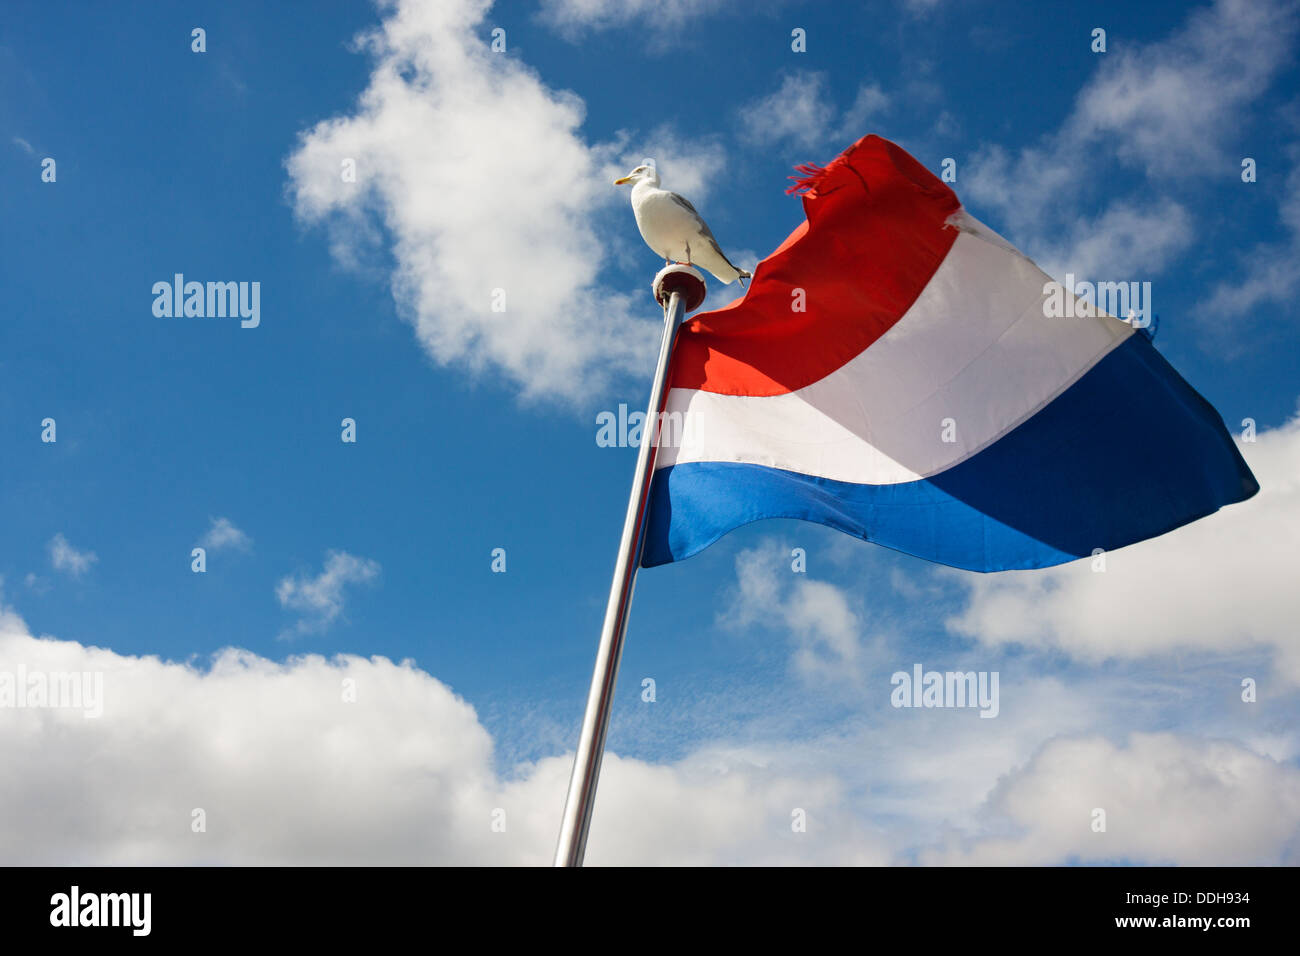 Seagull on flagpole with dutch flag - Stock Image